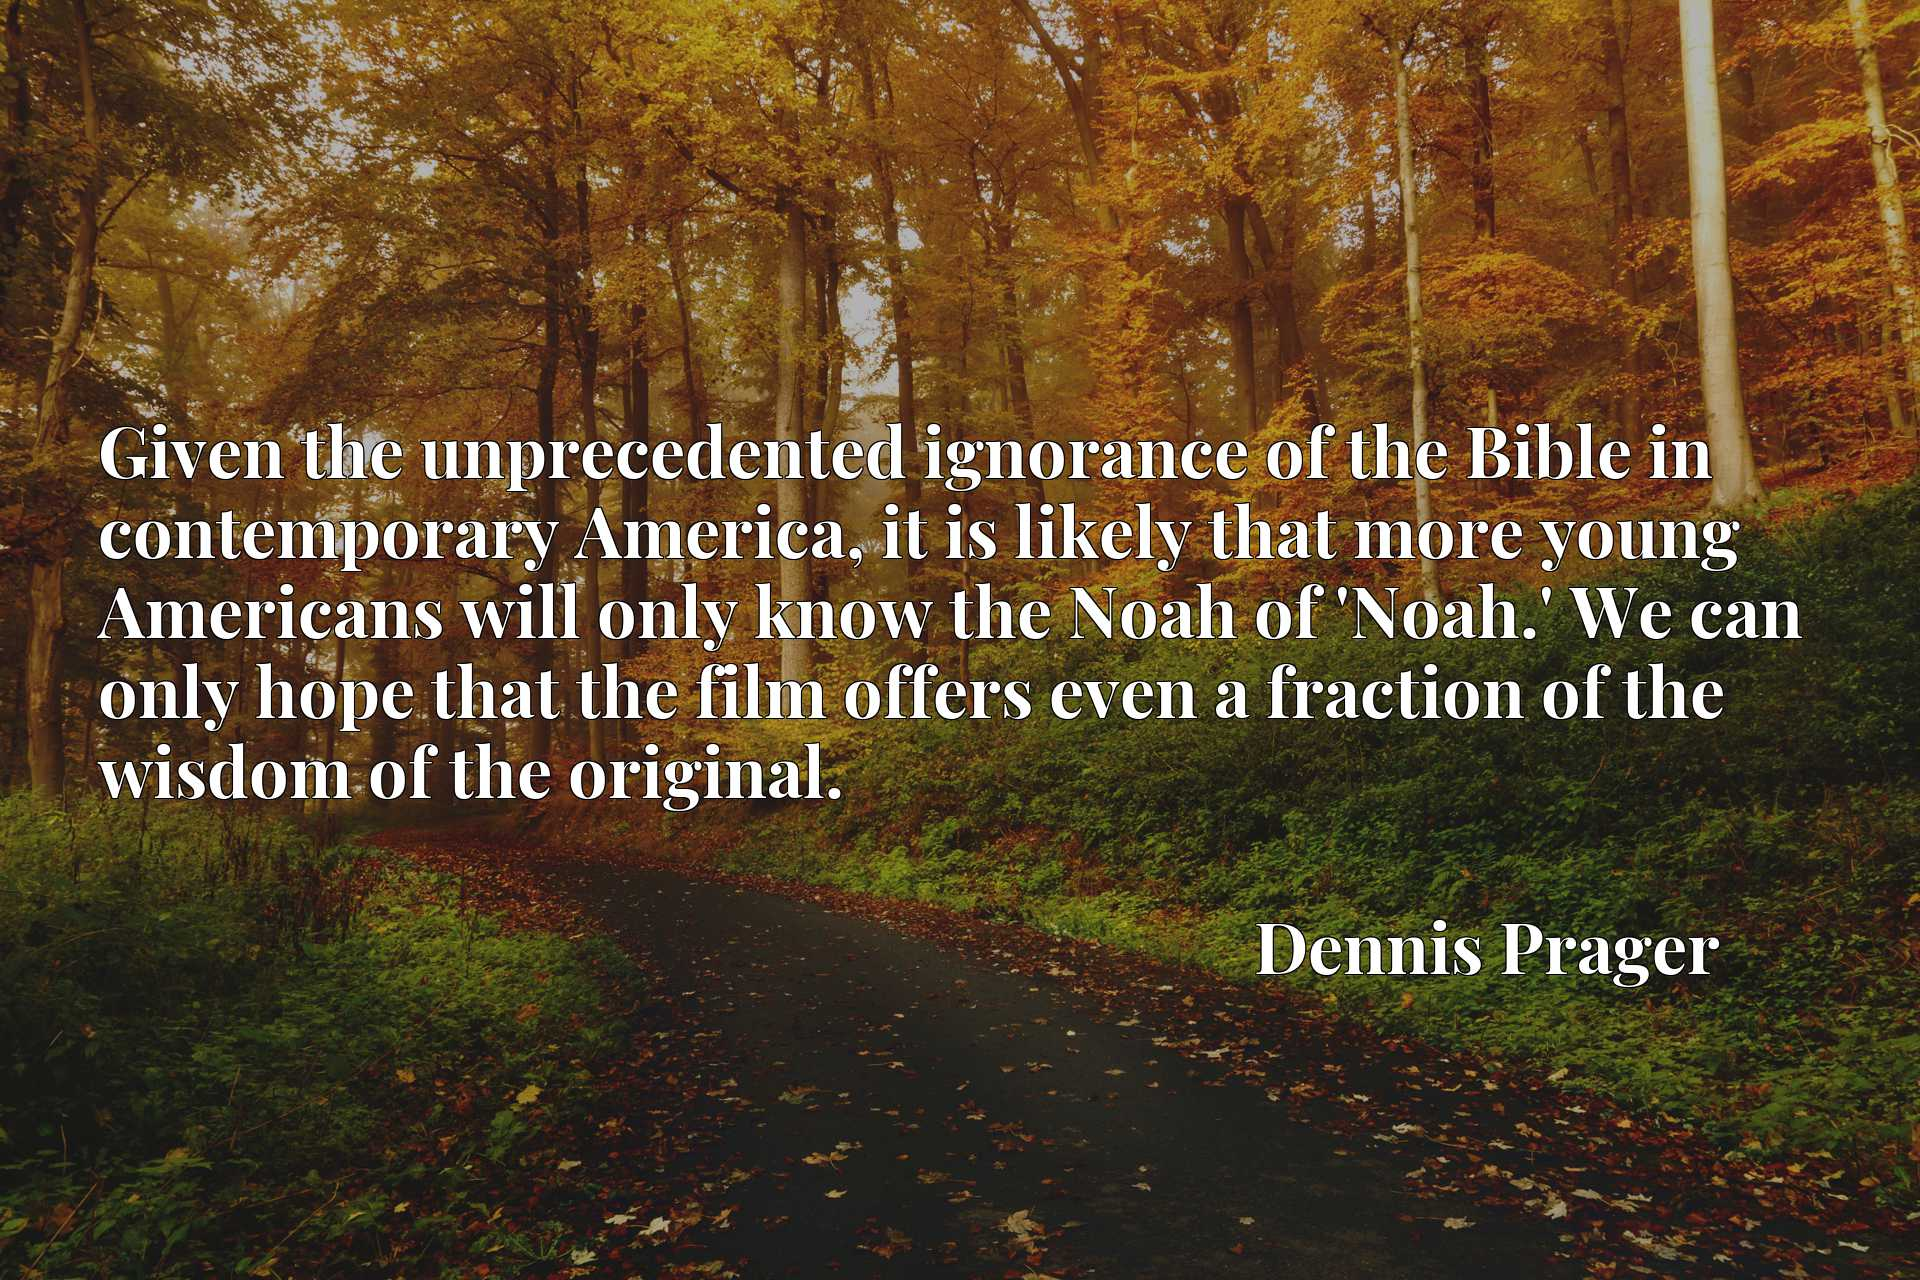 Given the unprecedented ignorance of the Bible in contemporary America, it is likely that more young Americans will only know the Noah of 'Noah.' We can only hope that the film offers even a fraction of the wisdom of the original.